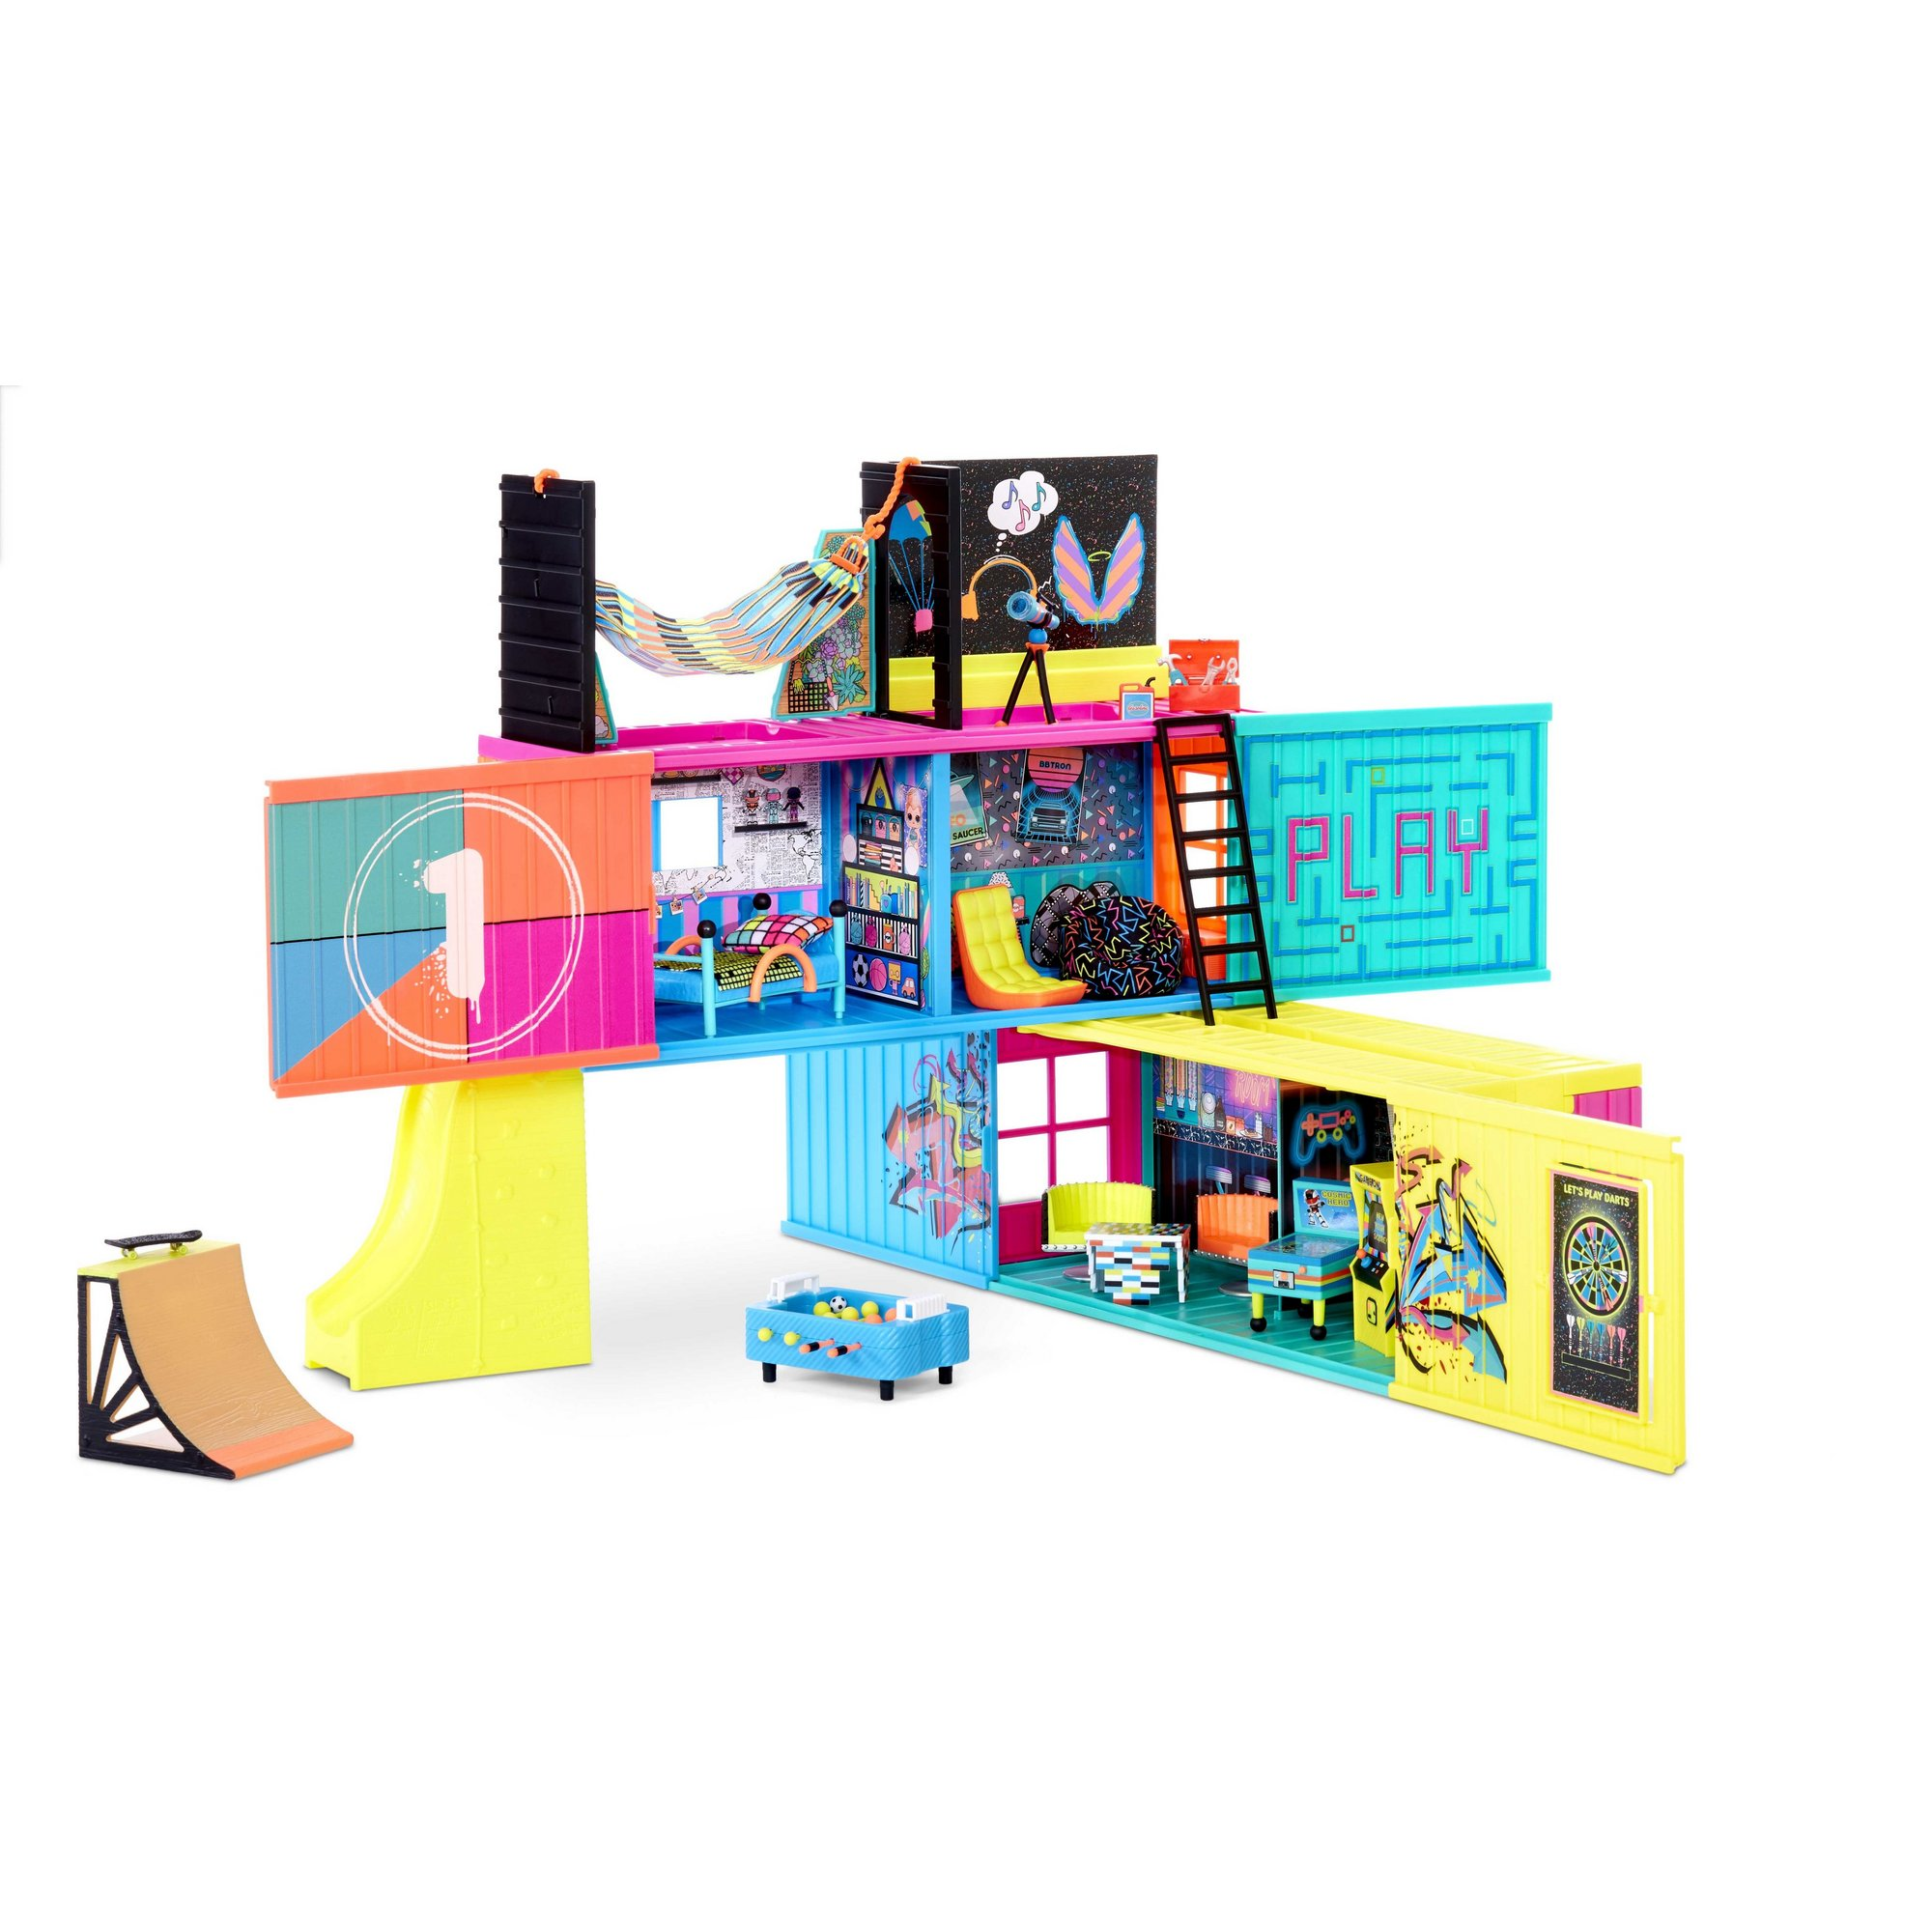 Image of L.O.L. Surprise Clubhouse Playset